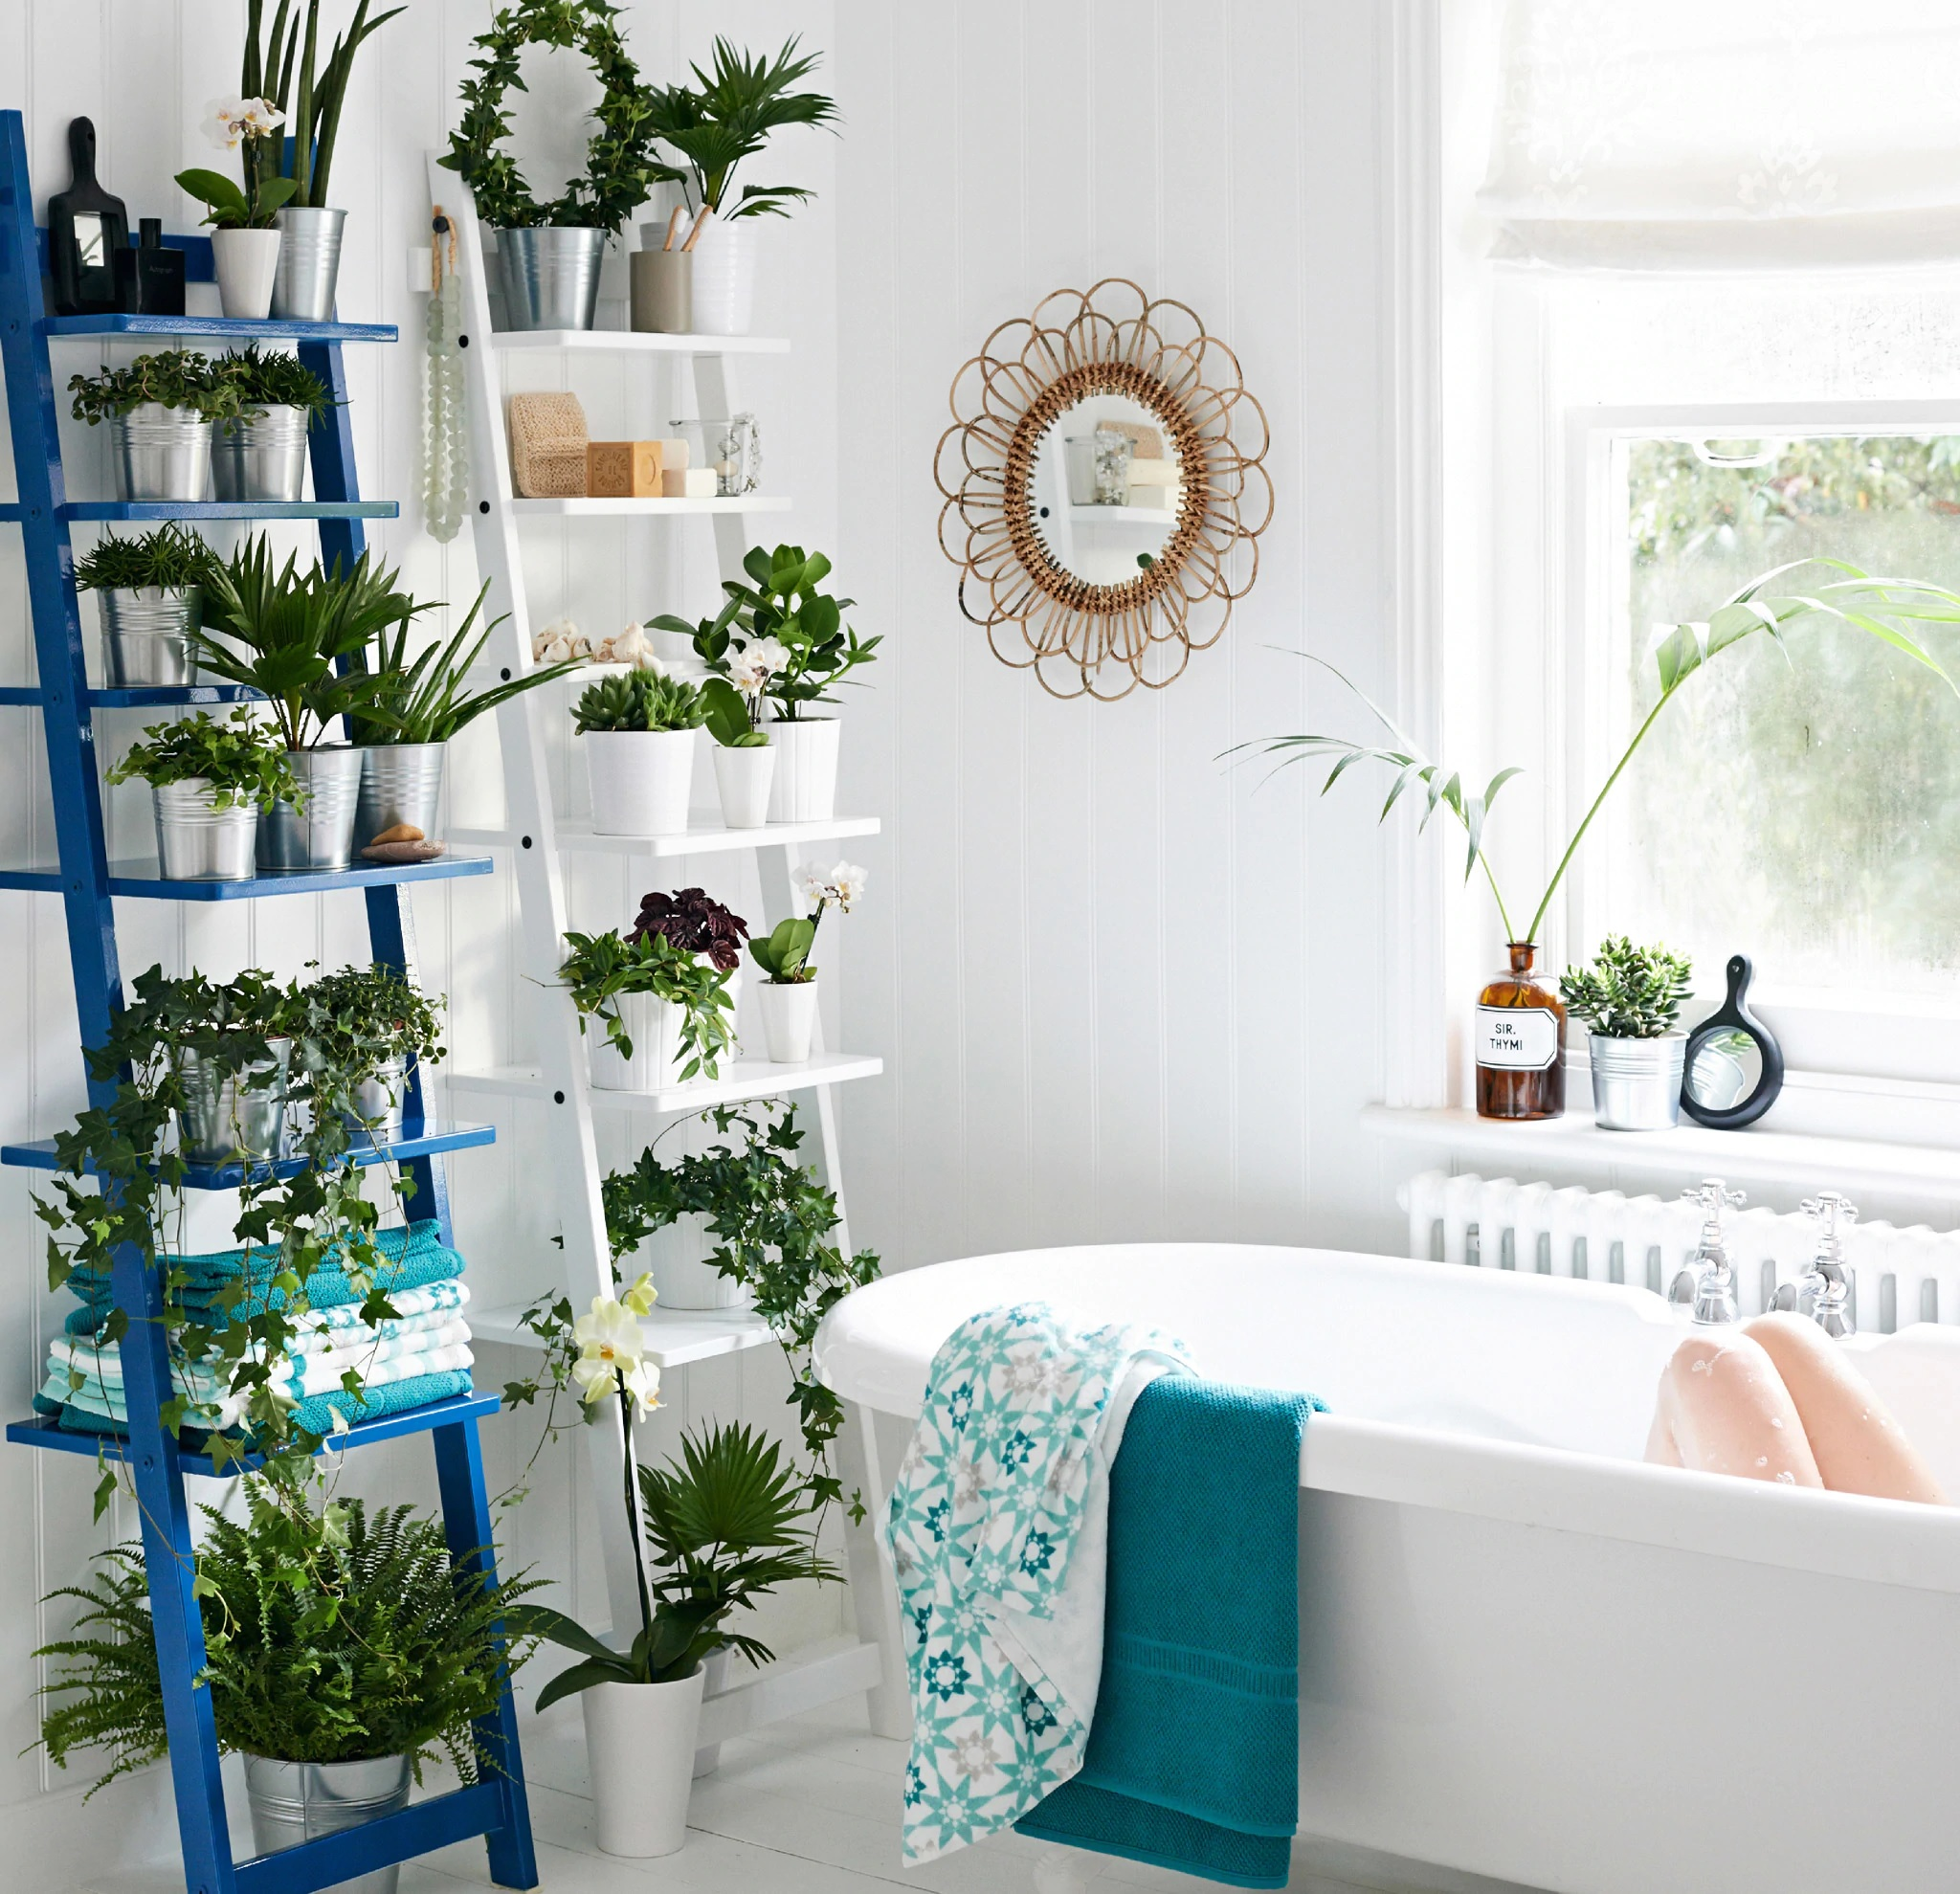 Ikea Bathroom Ladder Plant Awesome  ArchitectureIn